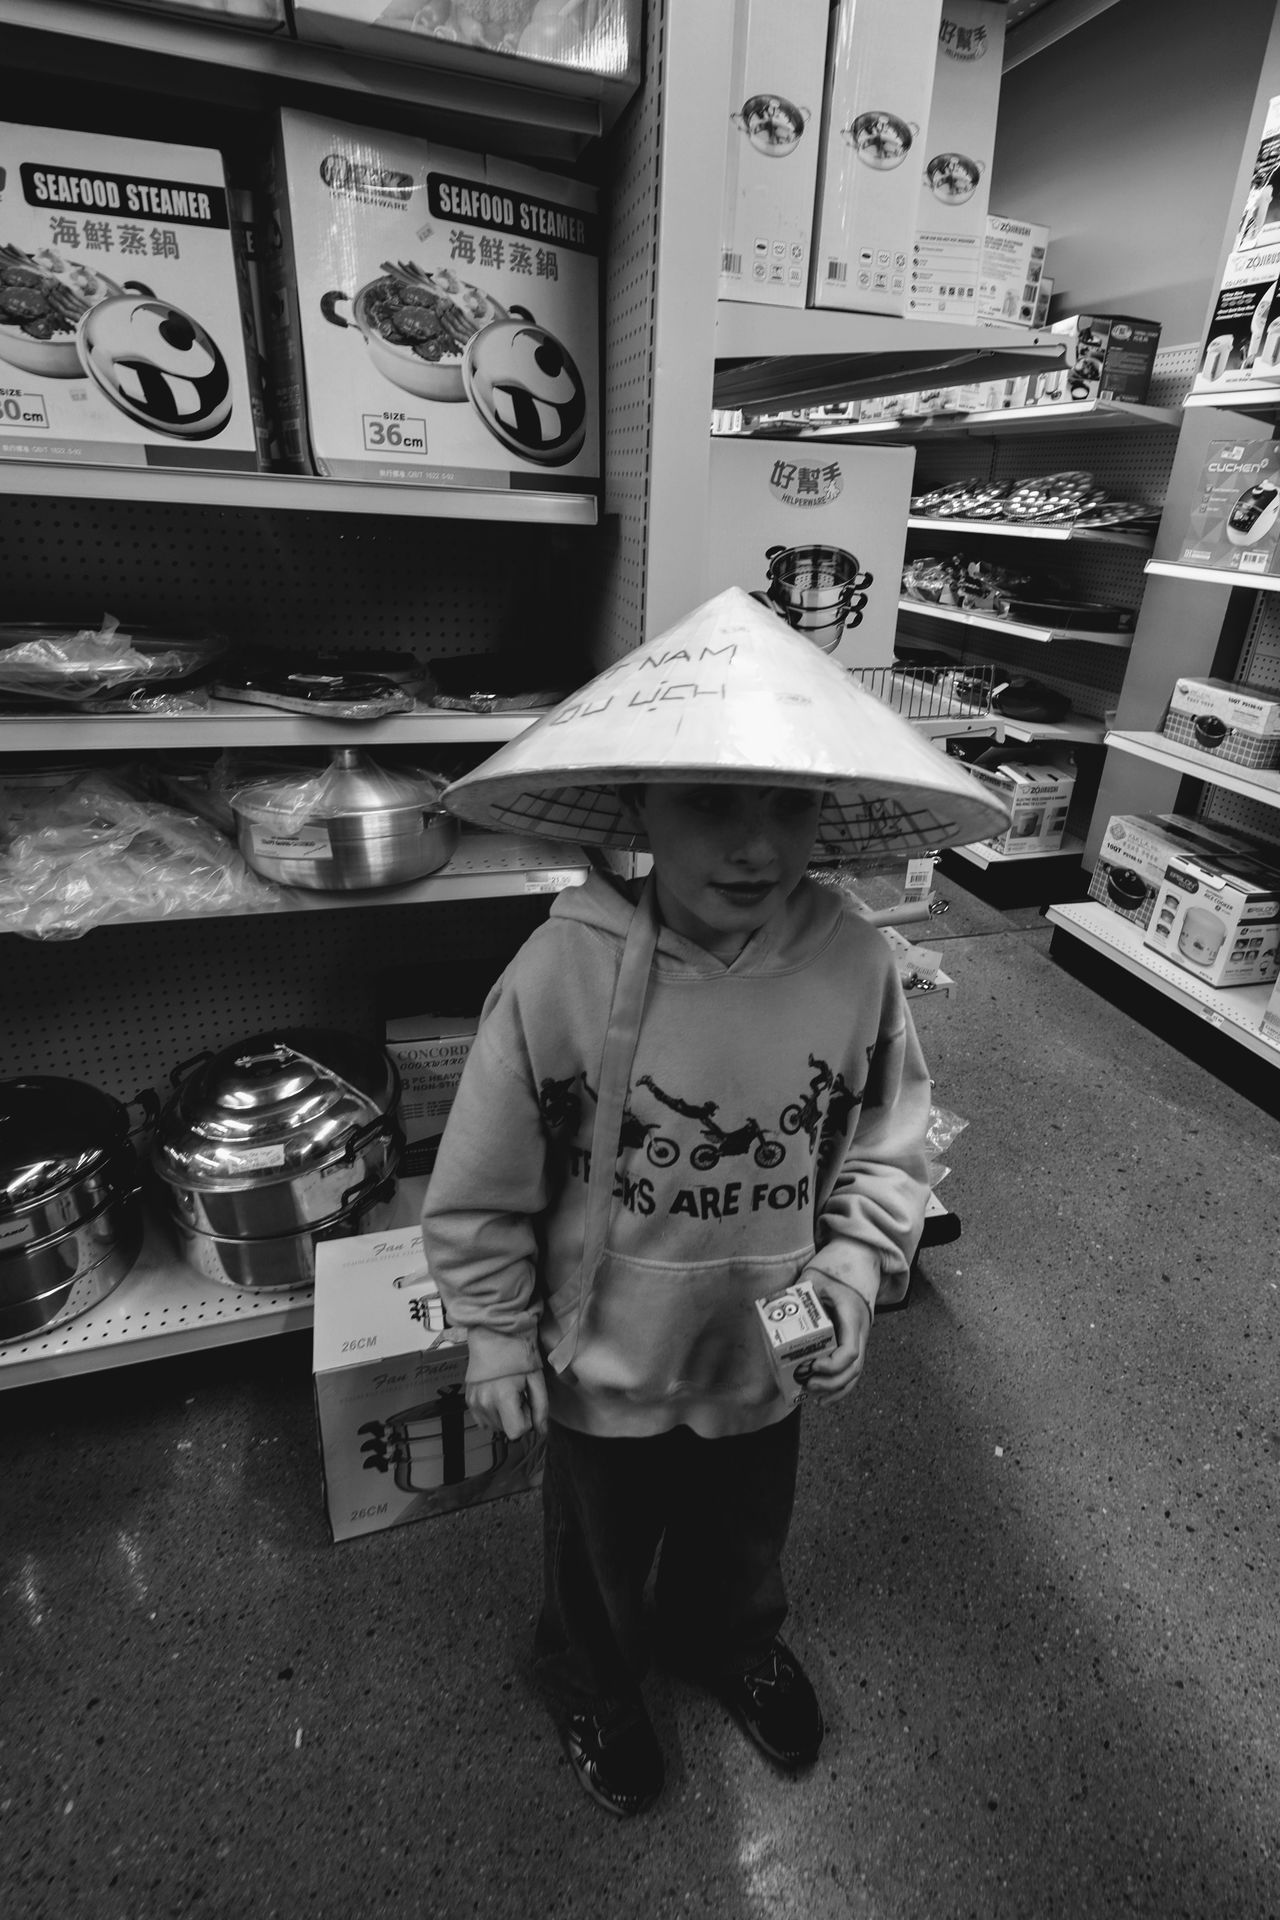 Visual Journal March 2017 Omaha, Nebraska Asian Conical Hat Asian Market Childhood Do'un Douliu Everyday Lives EyeEm Gallery FUJIFILM X-T1 Full Length Hat Leaf Hat Non La On The Road One Person Photo Diary Photo Essay Real People Shopping Standing Storytelling Sugegasa Visual Journal 斗笠 菅笠